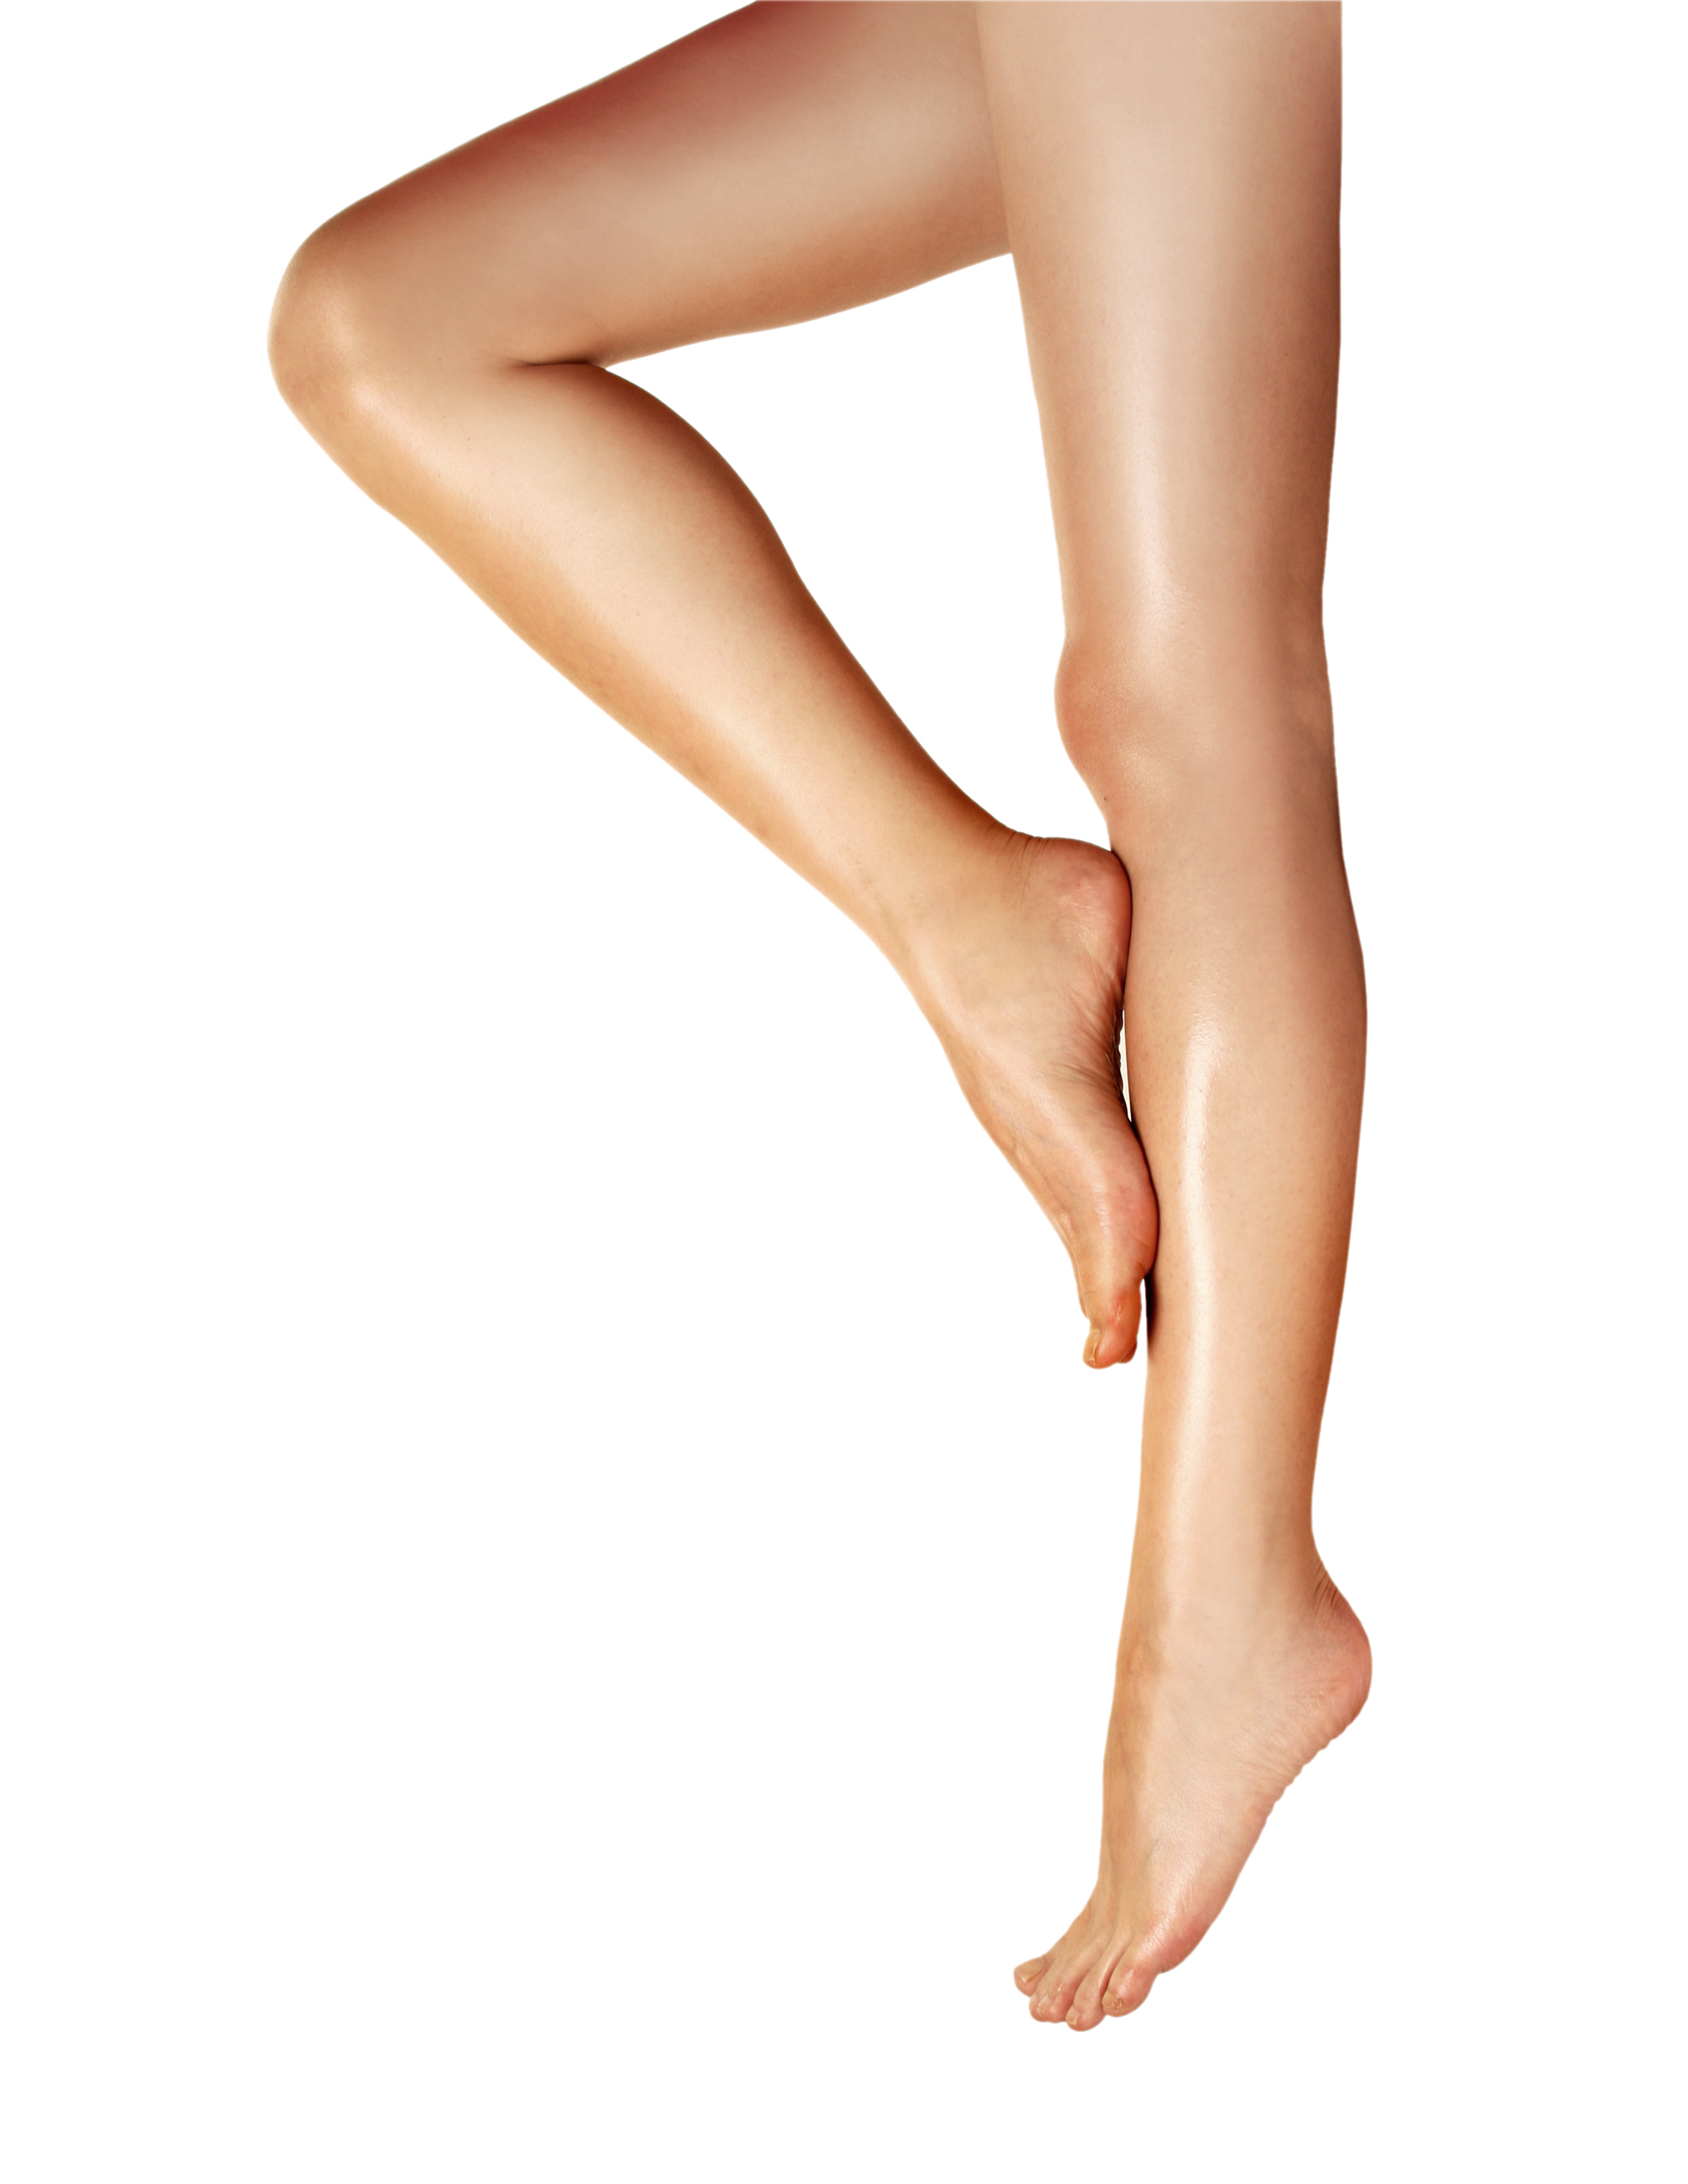 vcintage png girl wuth legs spread